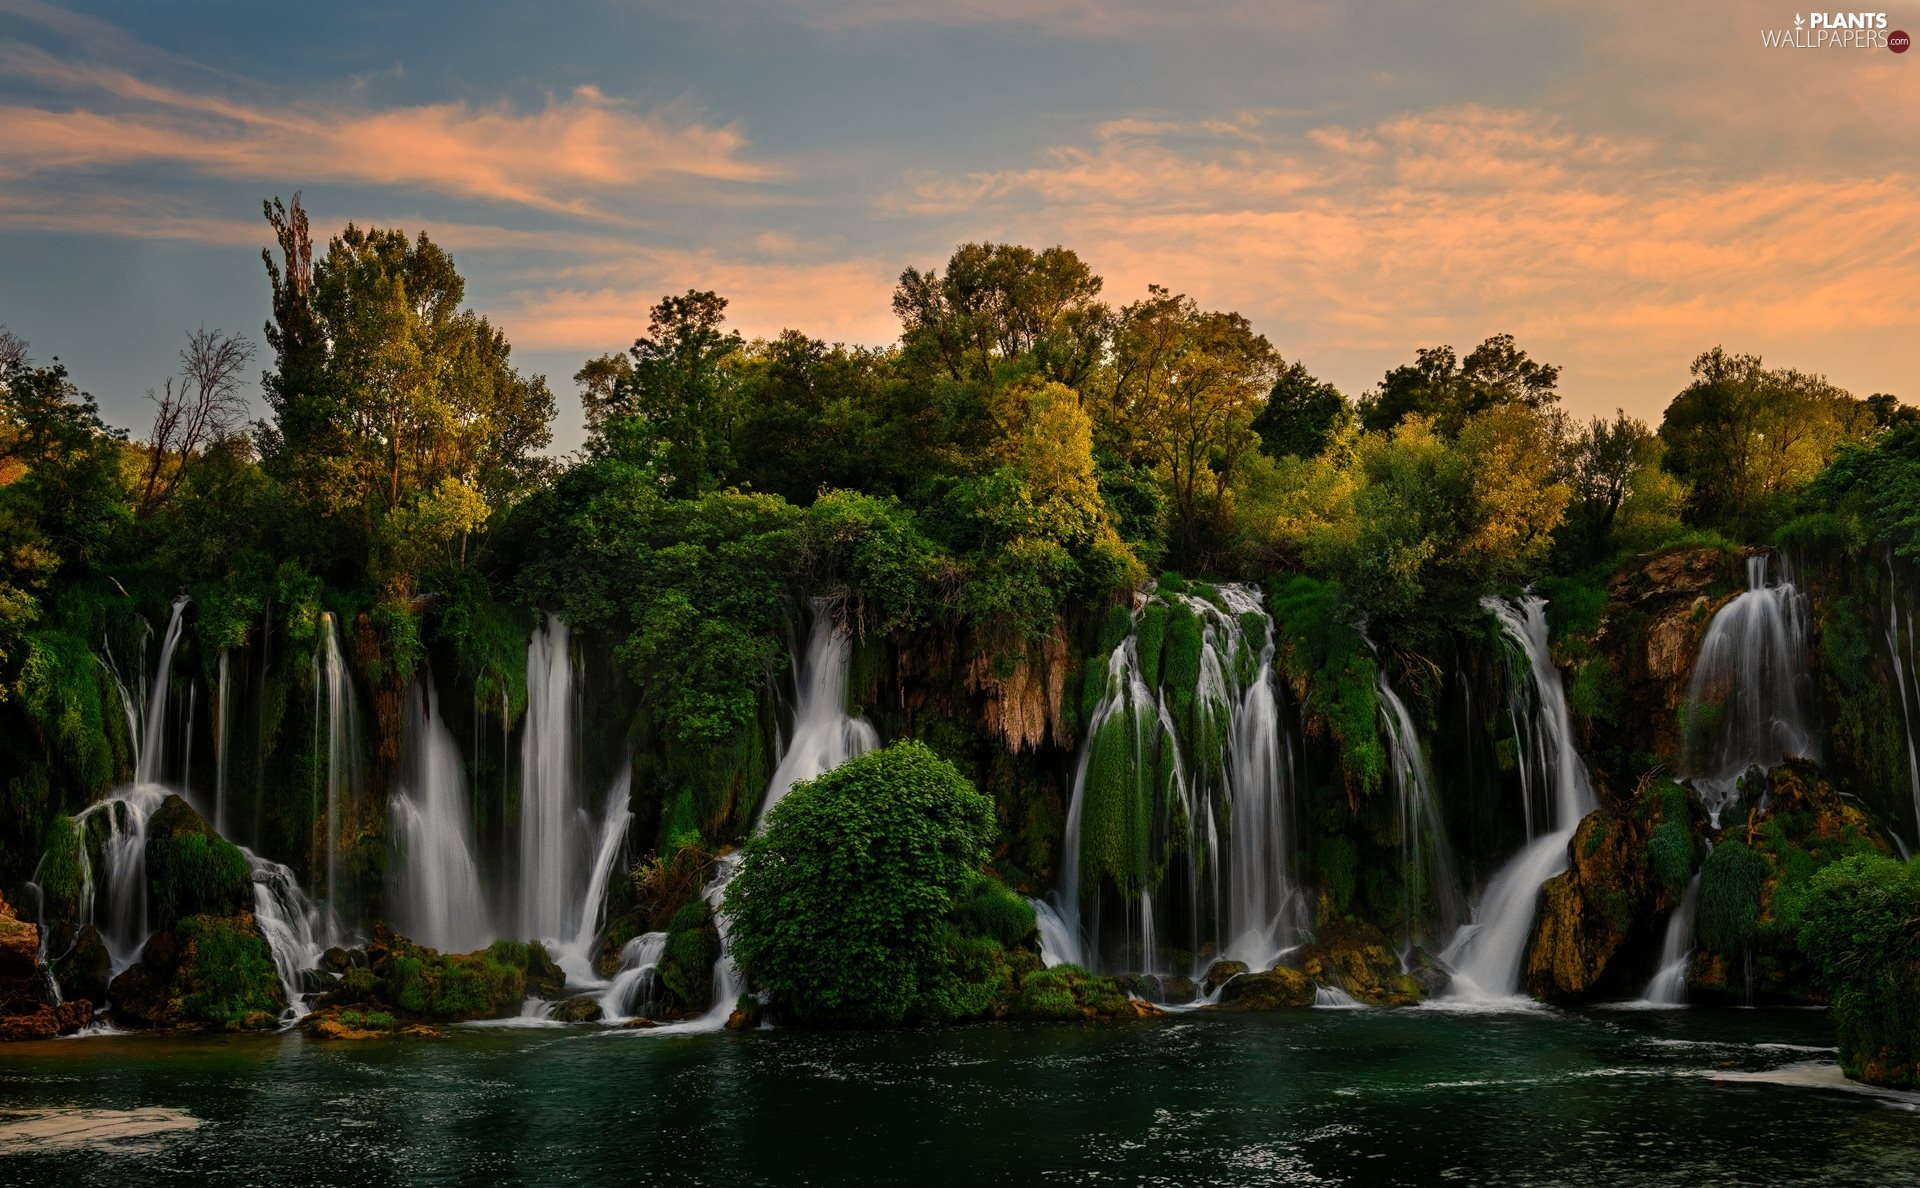 trees, Kravica Waterfalls, VEGETATION, Bosnia and Herzegovina, viewes, River